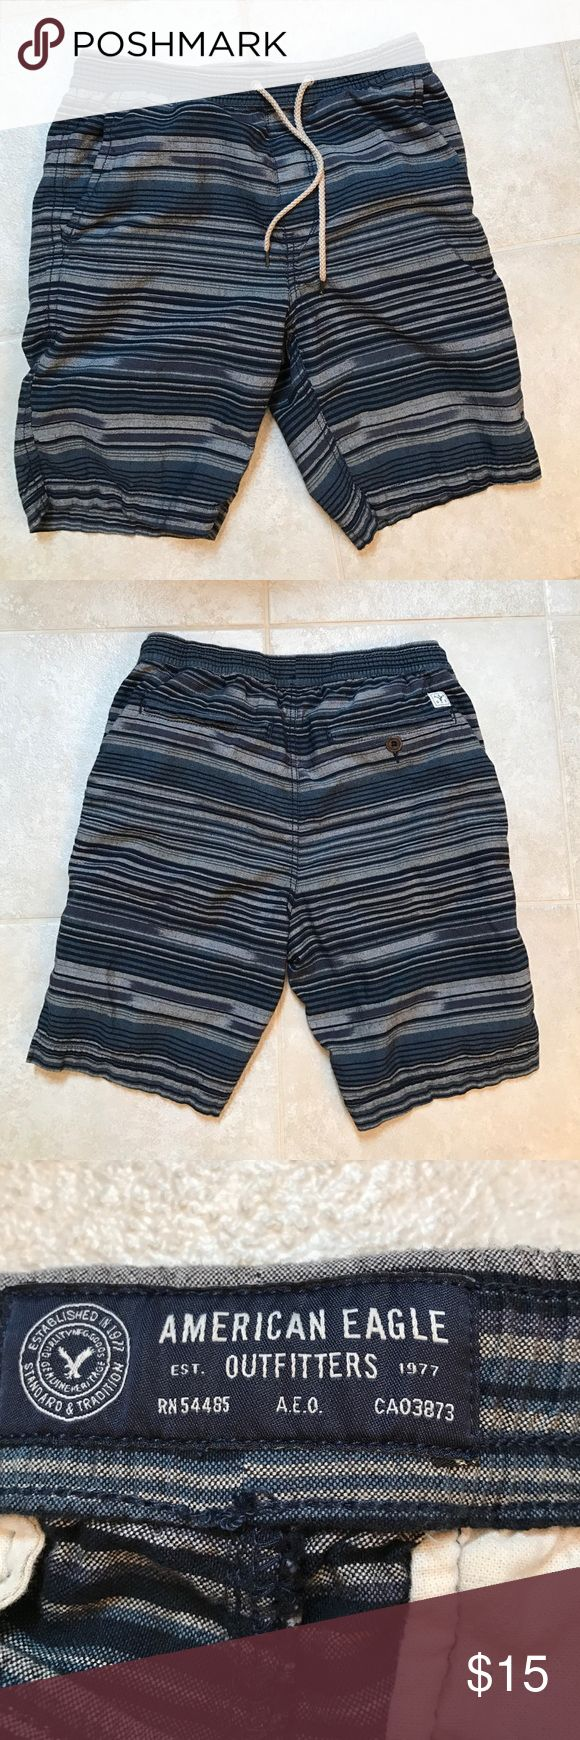 American Eagle men's small shorts American Eagle men's small blue black and grey striped shorts with drawstring waist.  Two pockets on front and back. American Eagle Outfitters Shorts